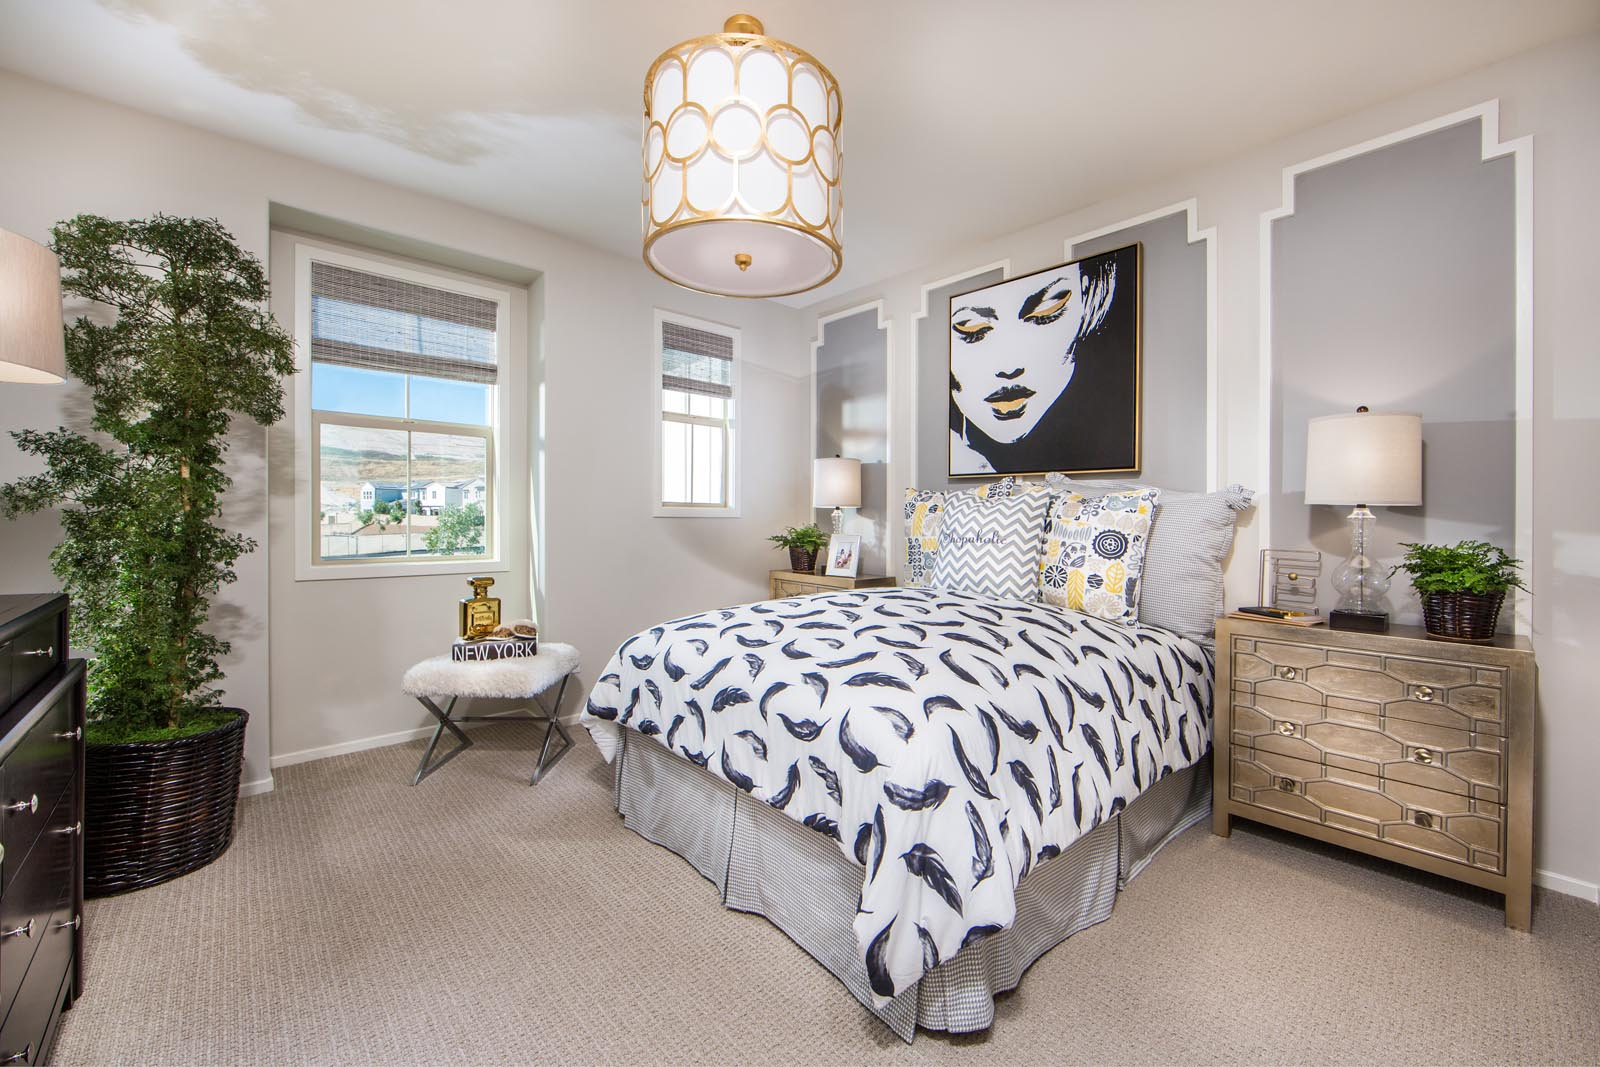 Residence 3 Bedroom 3 | Prado at the Village of Escaya in Chula Vista, CA | Brookfield Residential